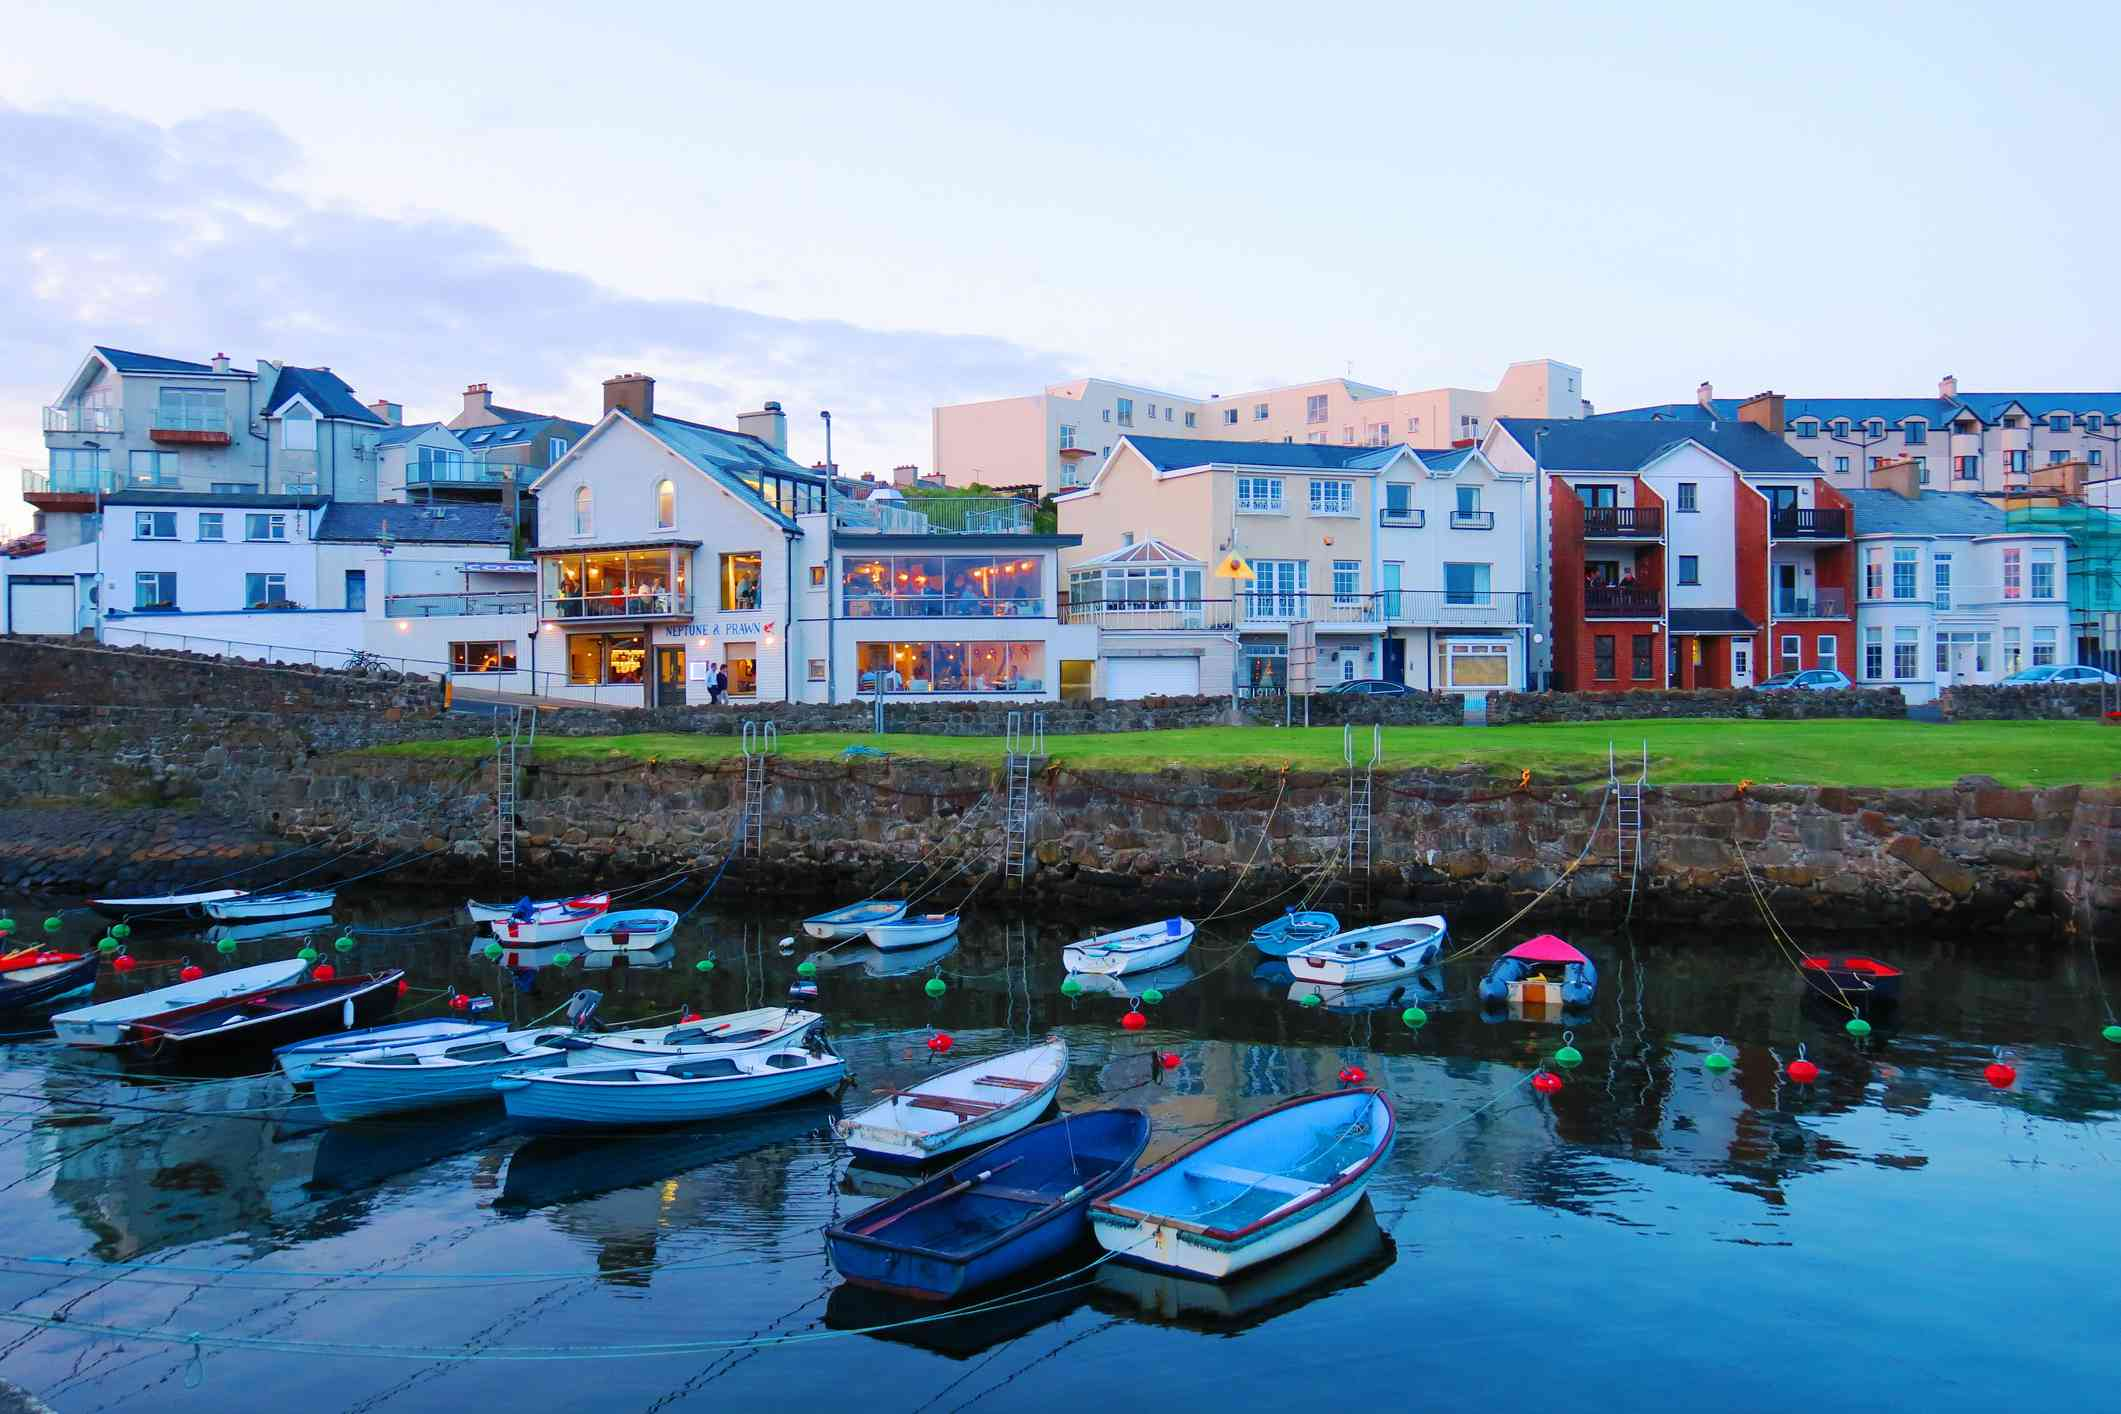 Seaside town of Portrush with empty boats floating in the water